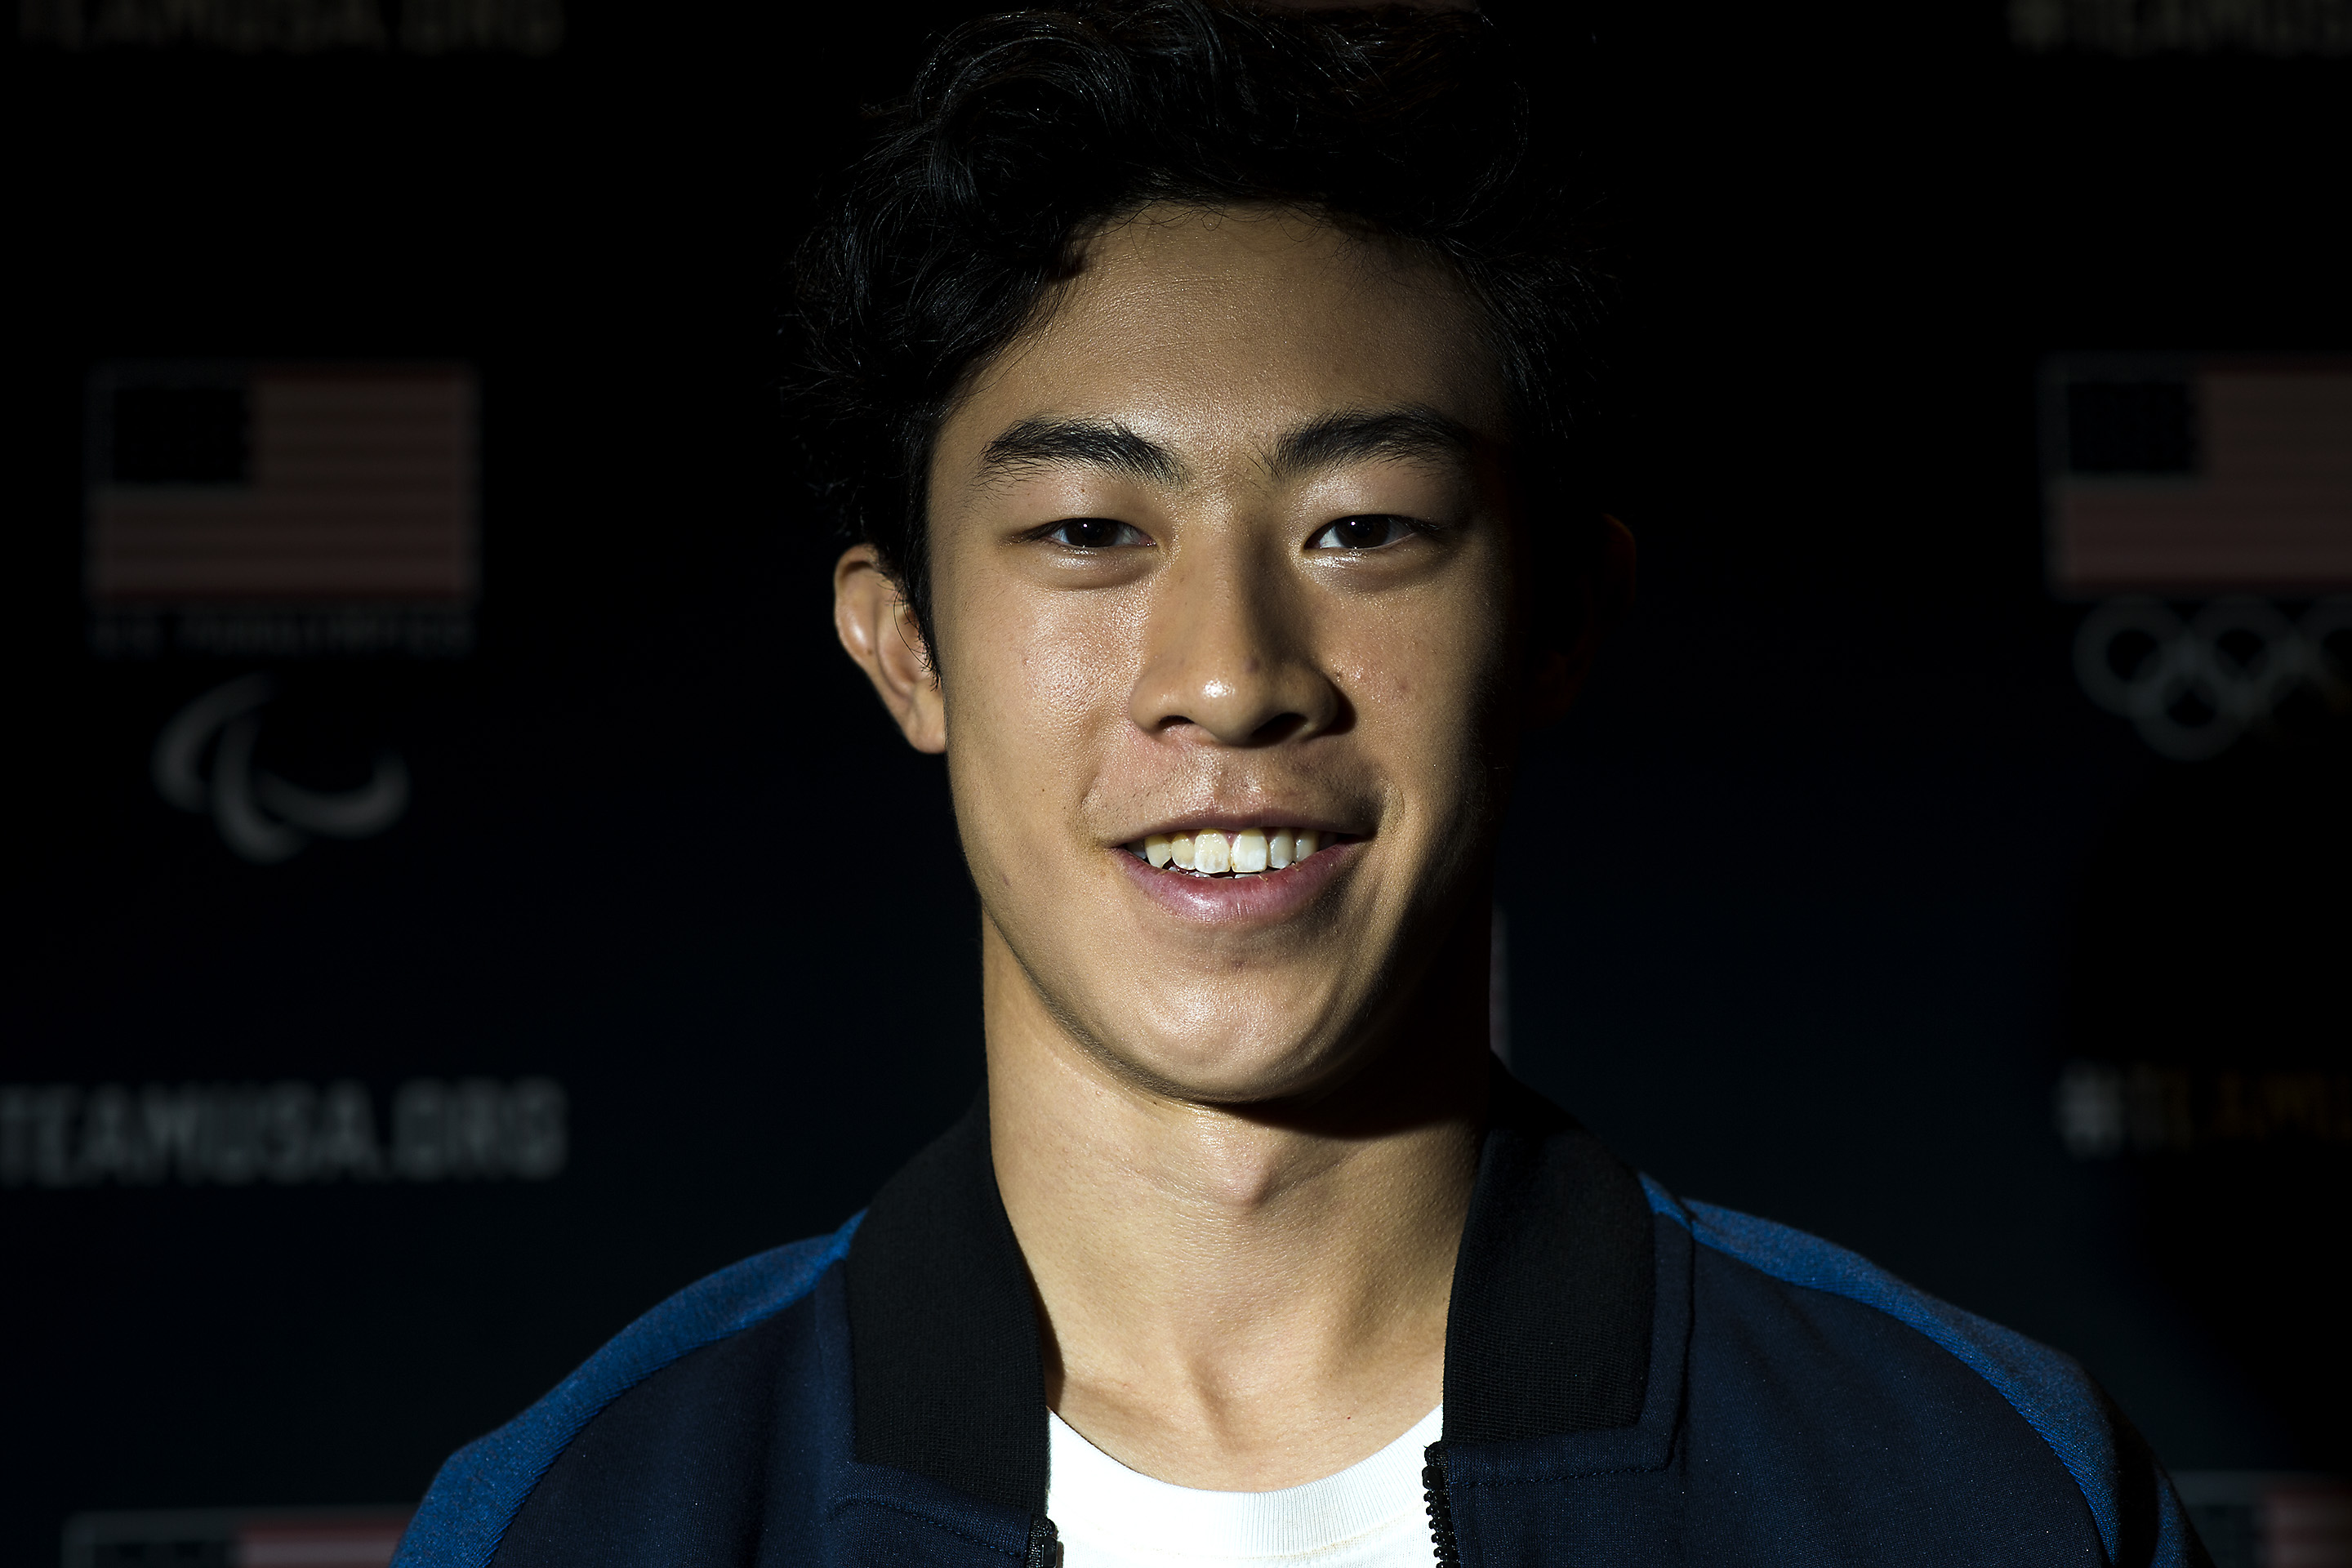 Utah native Nathan Chen is changing figure skating, and his next stop is the 2018 Winter Olympics